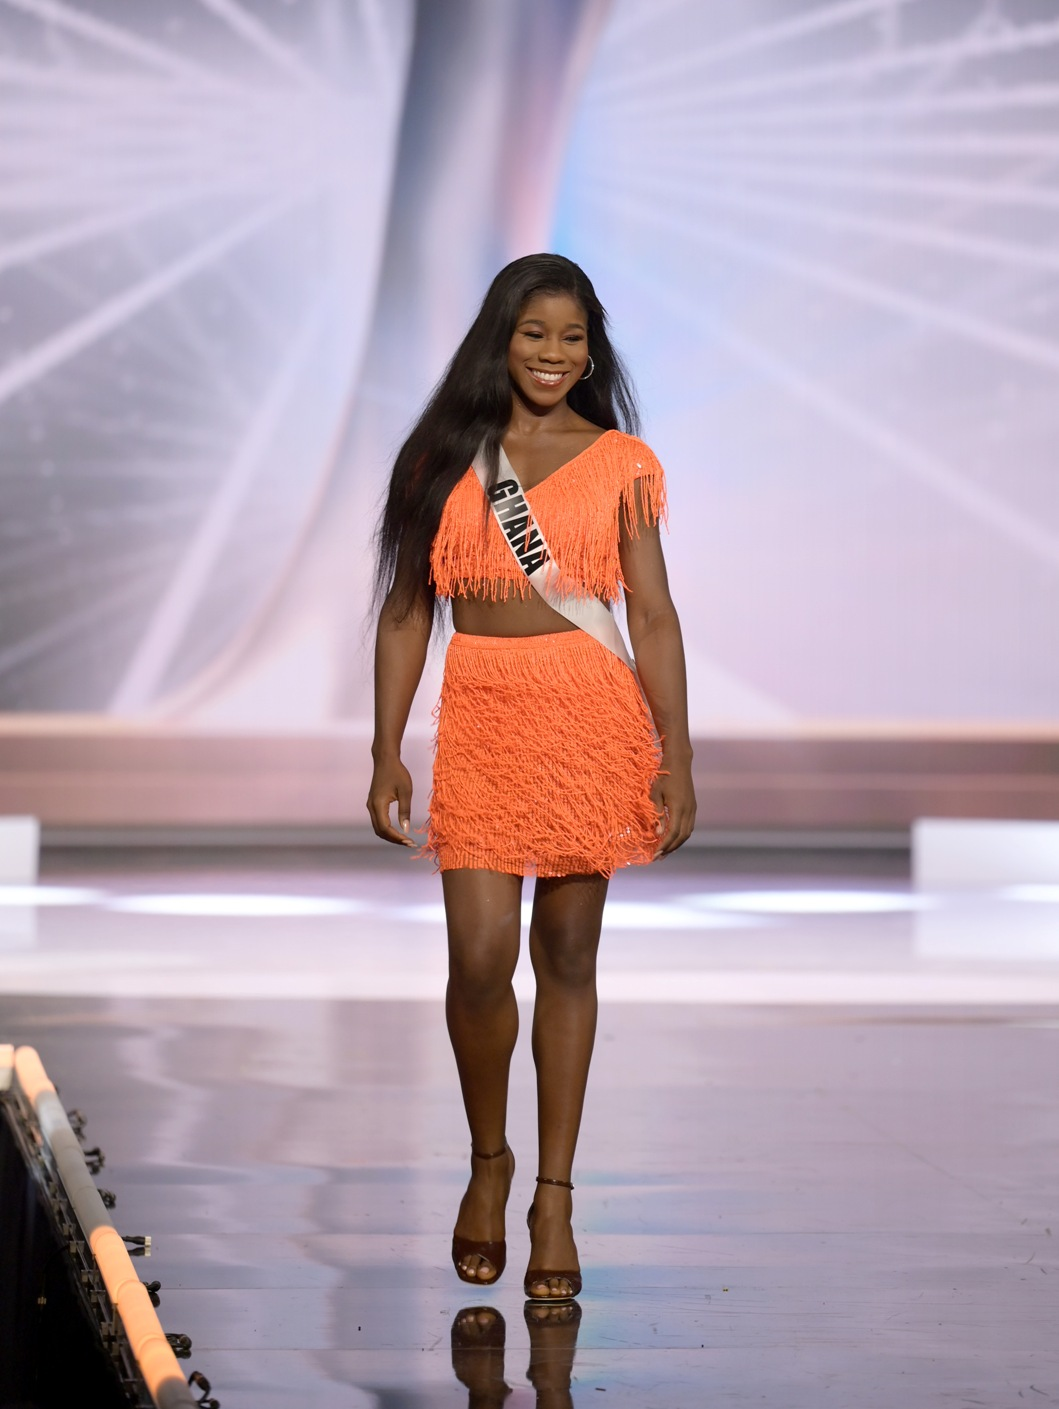 Chelsea Tayui, Miss Universe Ghana 2020 on stage in fashion by Sherri Hill during the opening of the MISS UNIVERSE® Preliminary Competition at the Seminole Hard Rock Hotel & Casino in Hollywood, Florida on May 14, 2021. Tune in to the live telecast on FYI and Telemundo on Sunday, May 16 at 8:00 PM ET to see who will become the next Miss Universe.